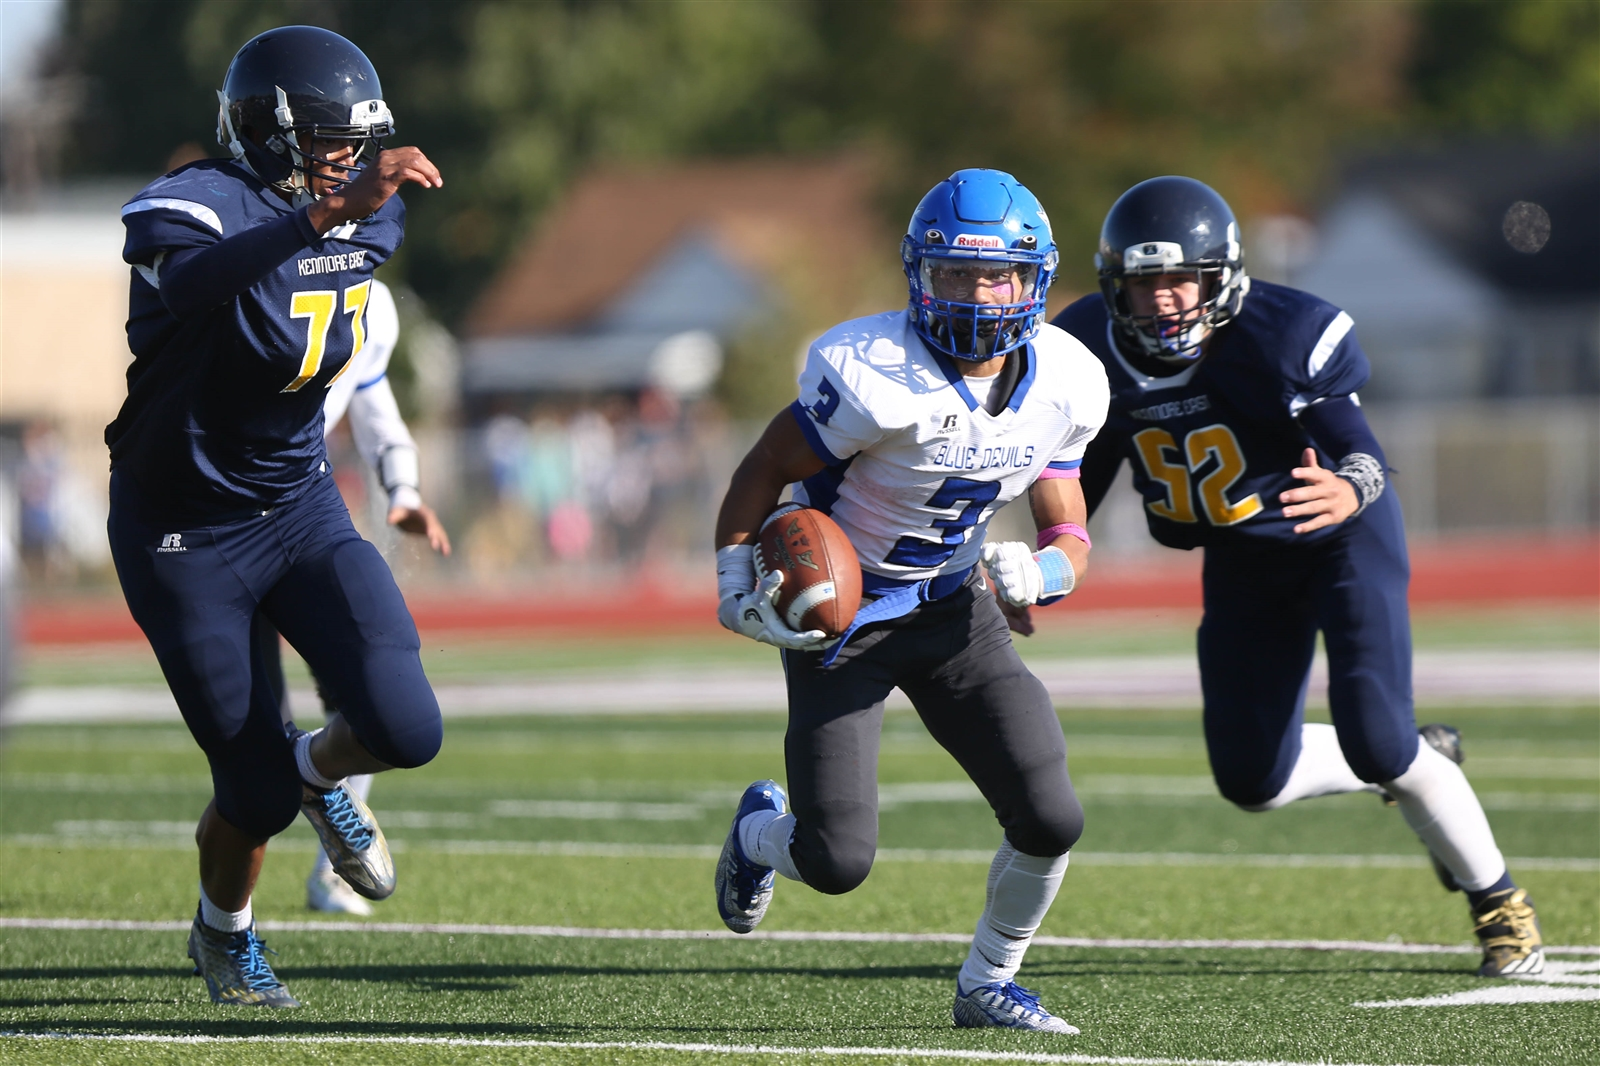 Kenmore West senior Erriono Giardina ran 21 times for 247 yards and four touchdowns in a 41-6 rout over Kenmore East. (Dave DeLuca/Special to The News)